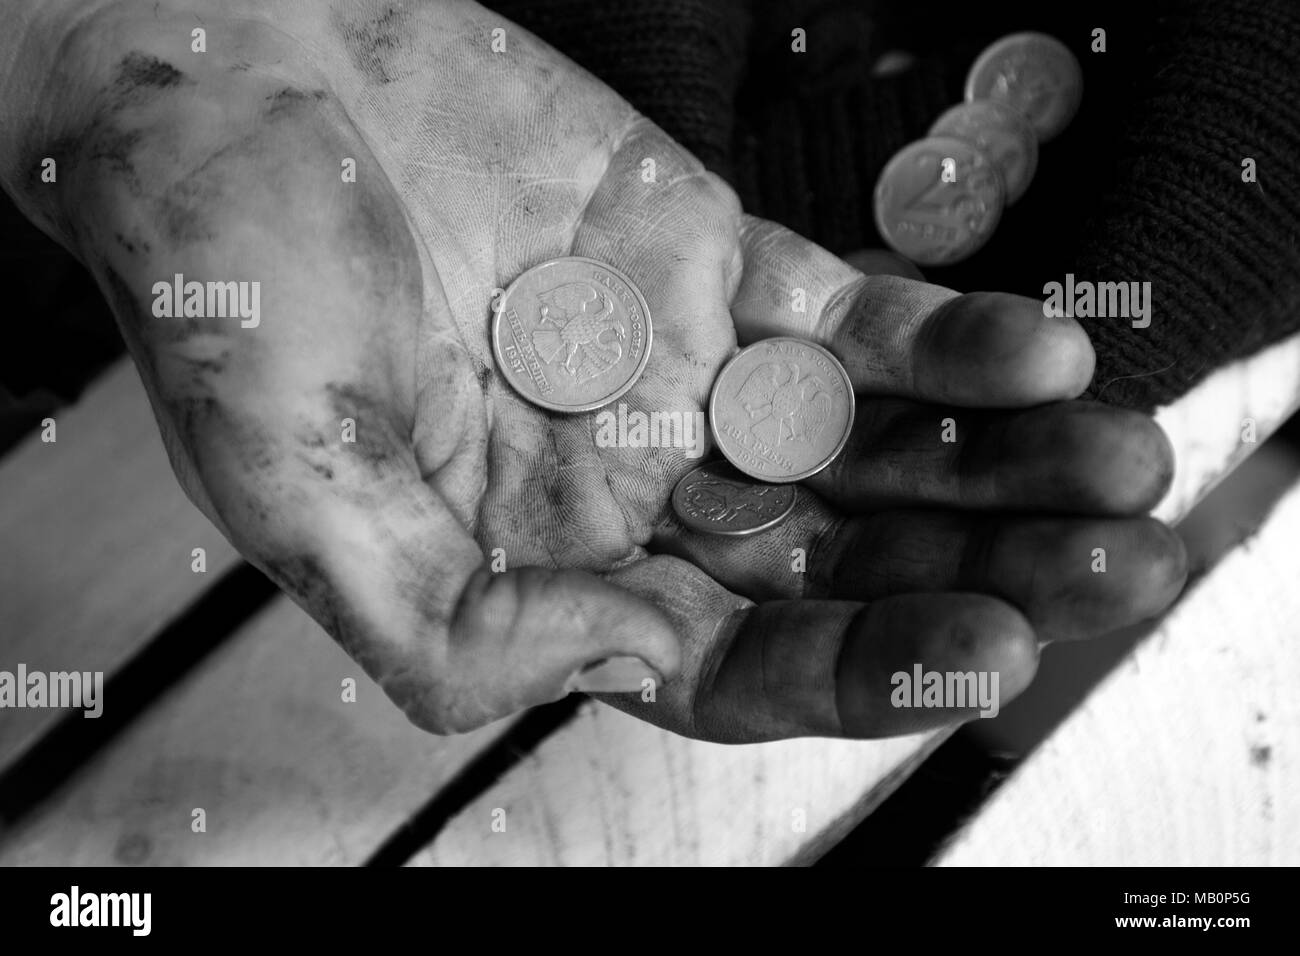 The dirty hands of a tramp. - Stock Image